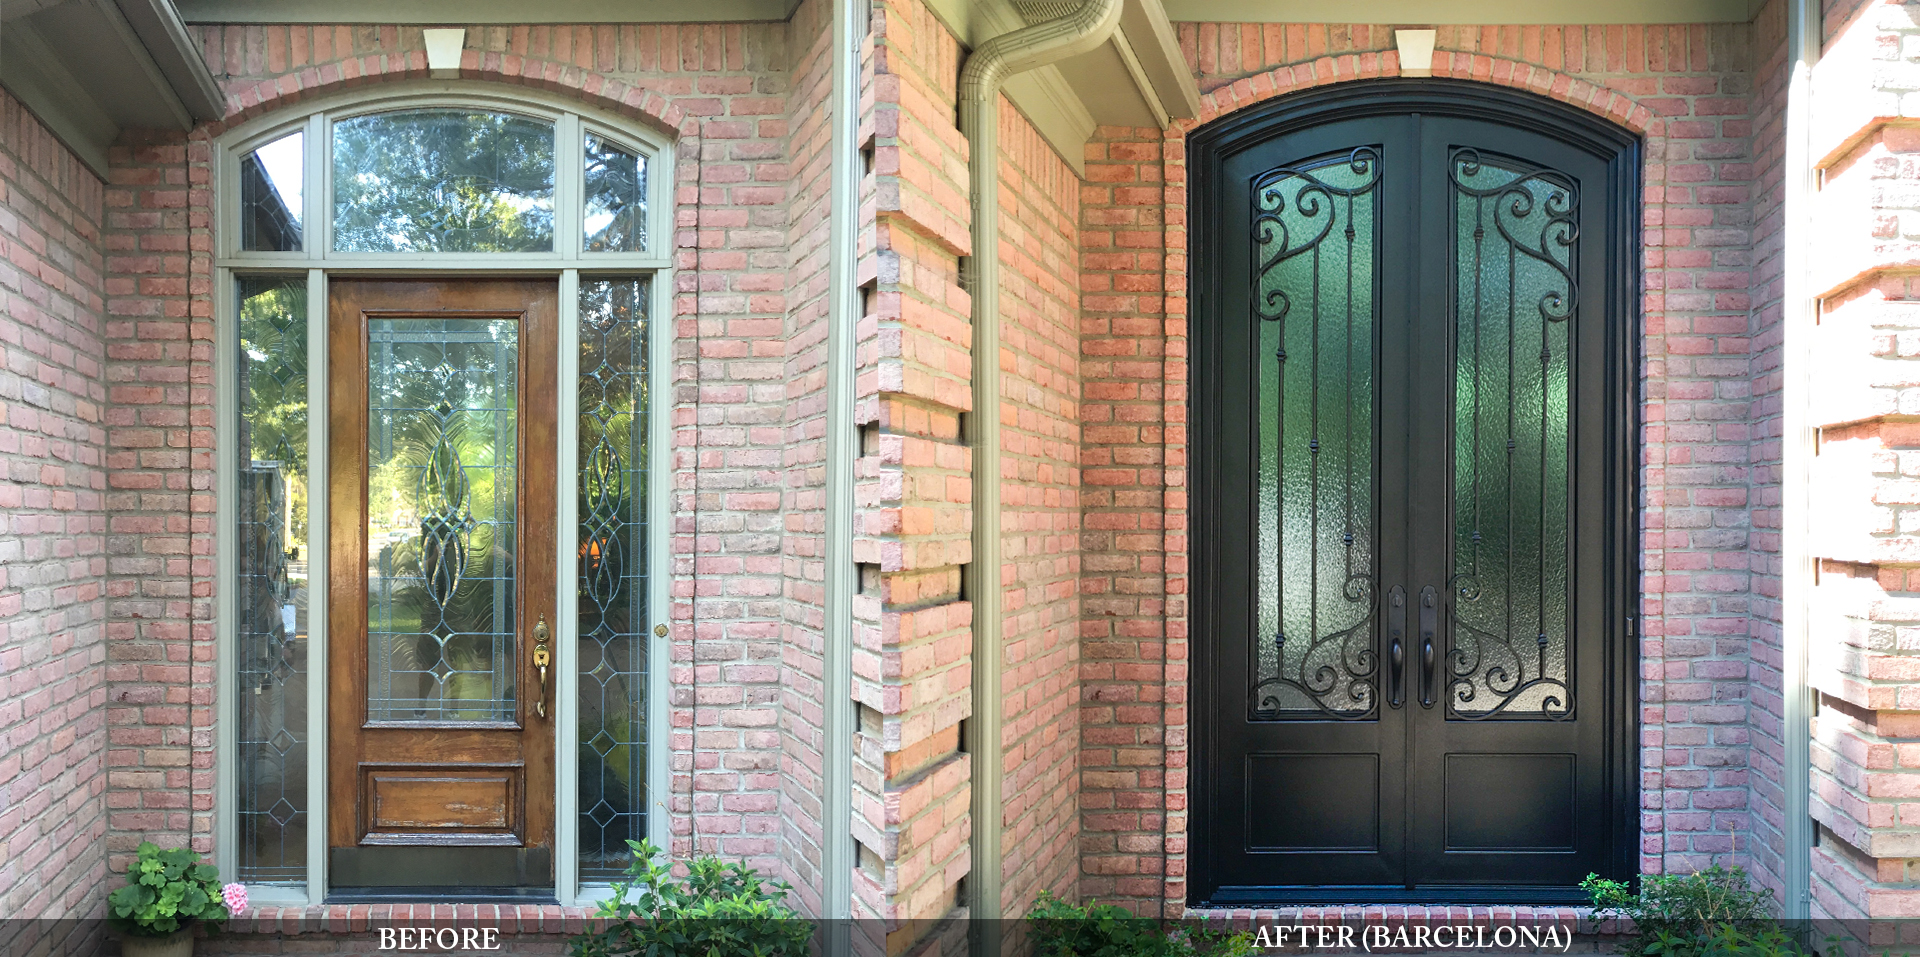 Traditional residential entry doors before and after comparison